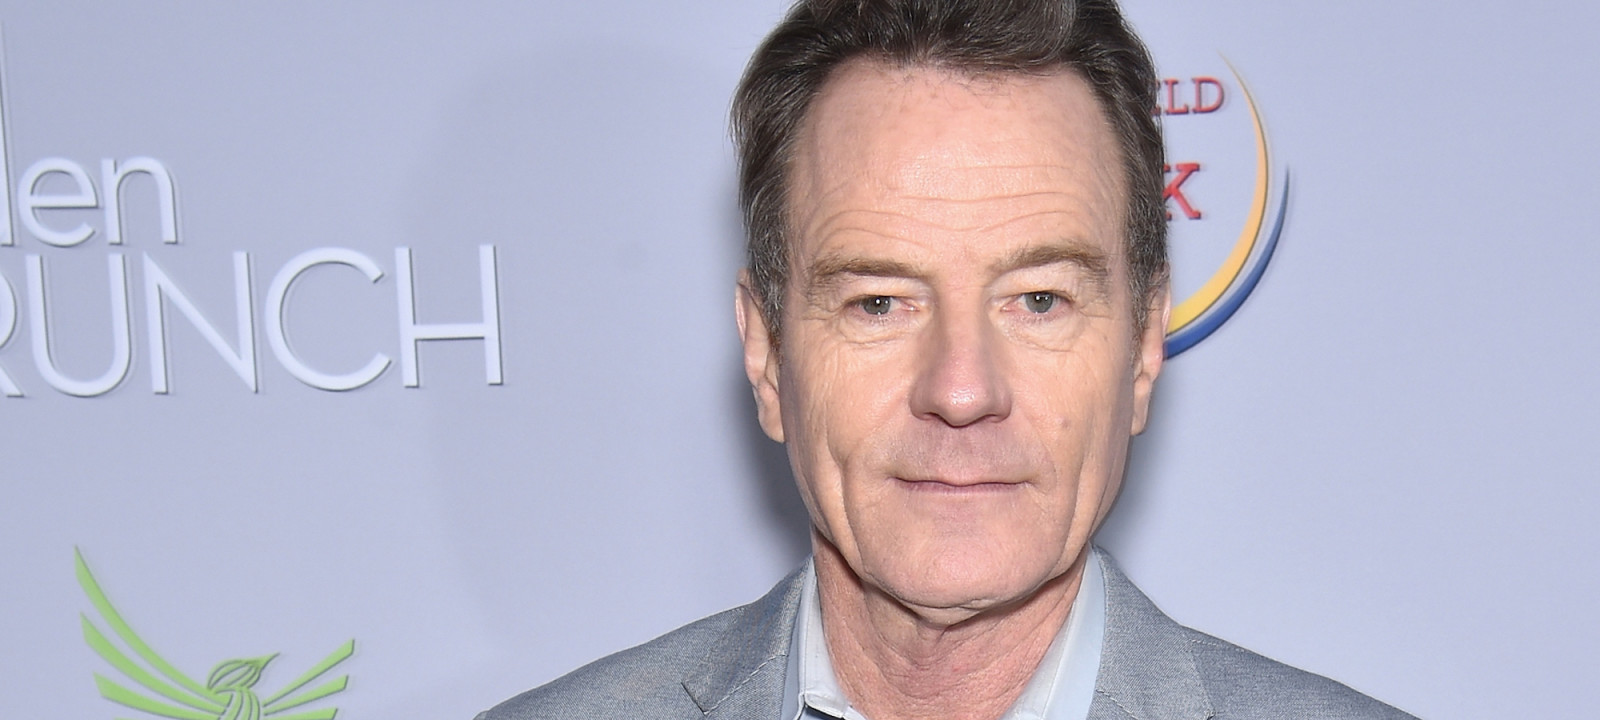 Bryan Cranston attends the Garden Brunch prior to the 102nd White House Correspondents' Association Dinner at the Beall-Washington House on April 30, 2016 in Washington, DC.